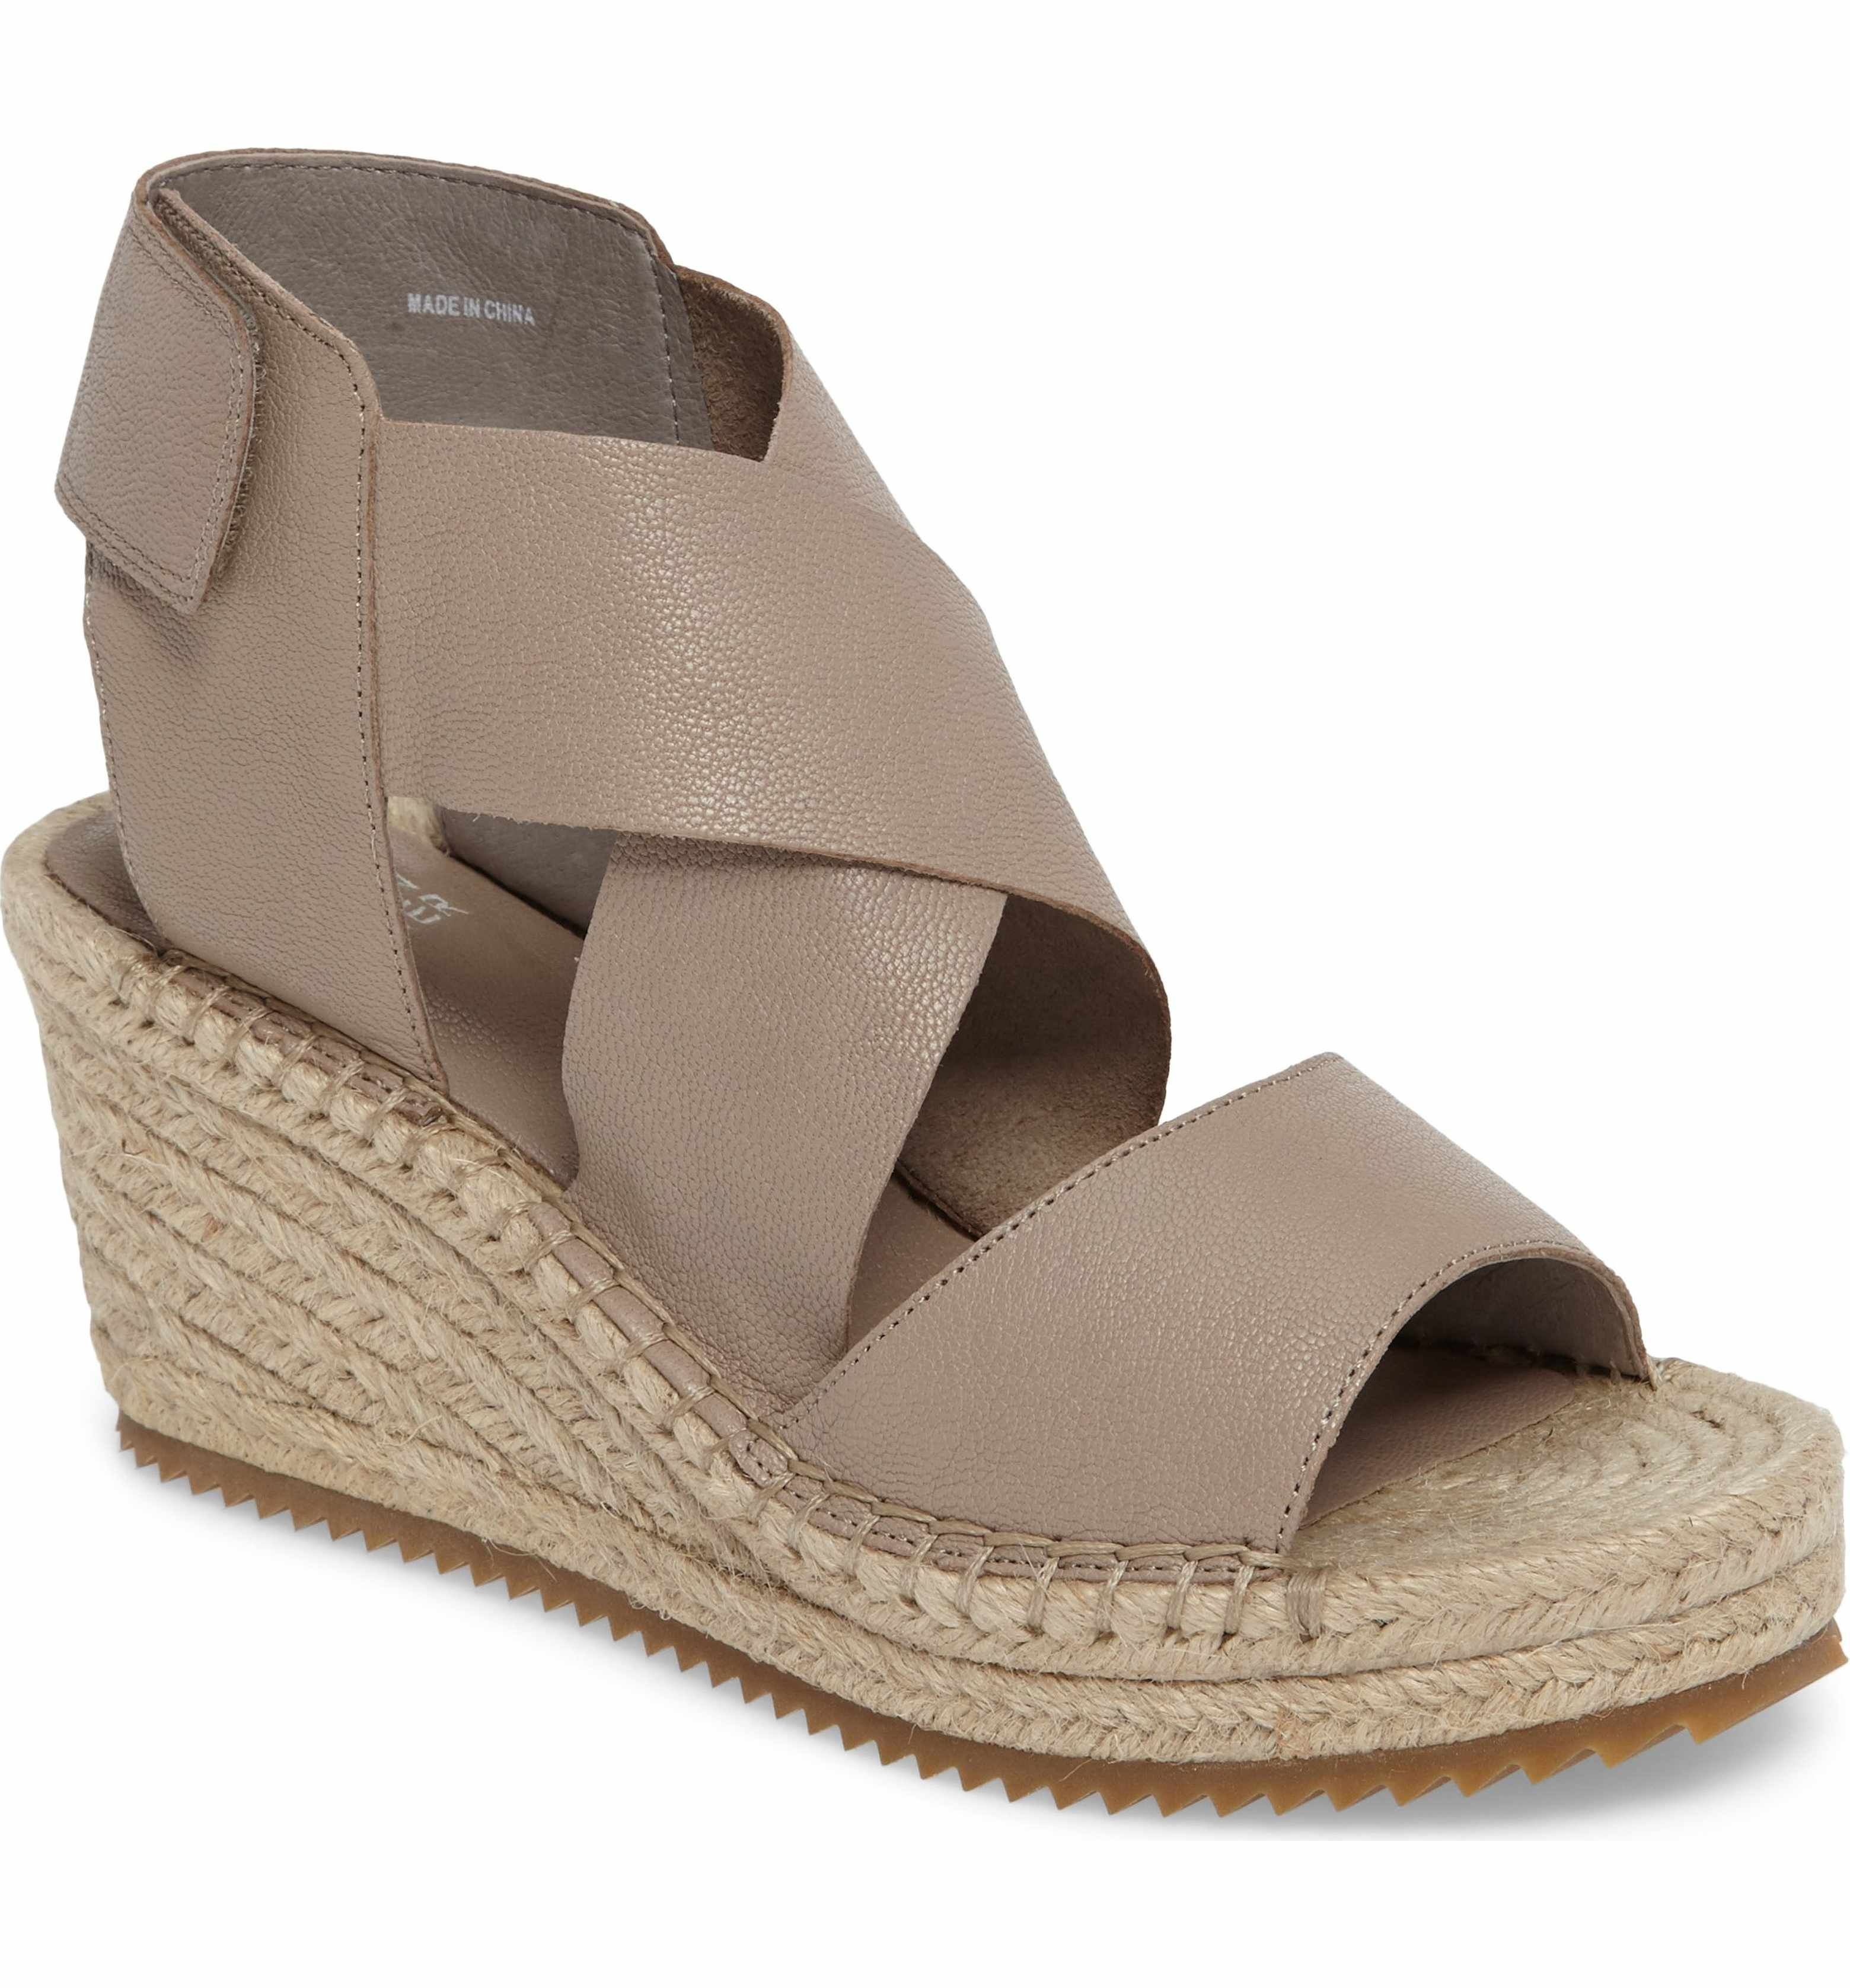 best showitems of nwbigeasy pz pg bigeasy brand prices west asp lowest comforter comfort nine the wedge source wedges your for sandals